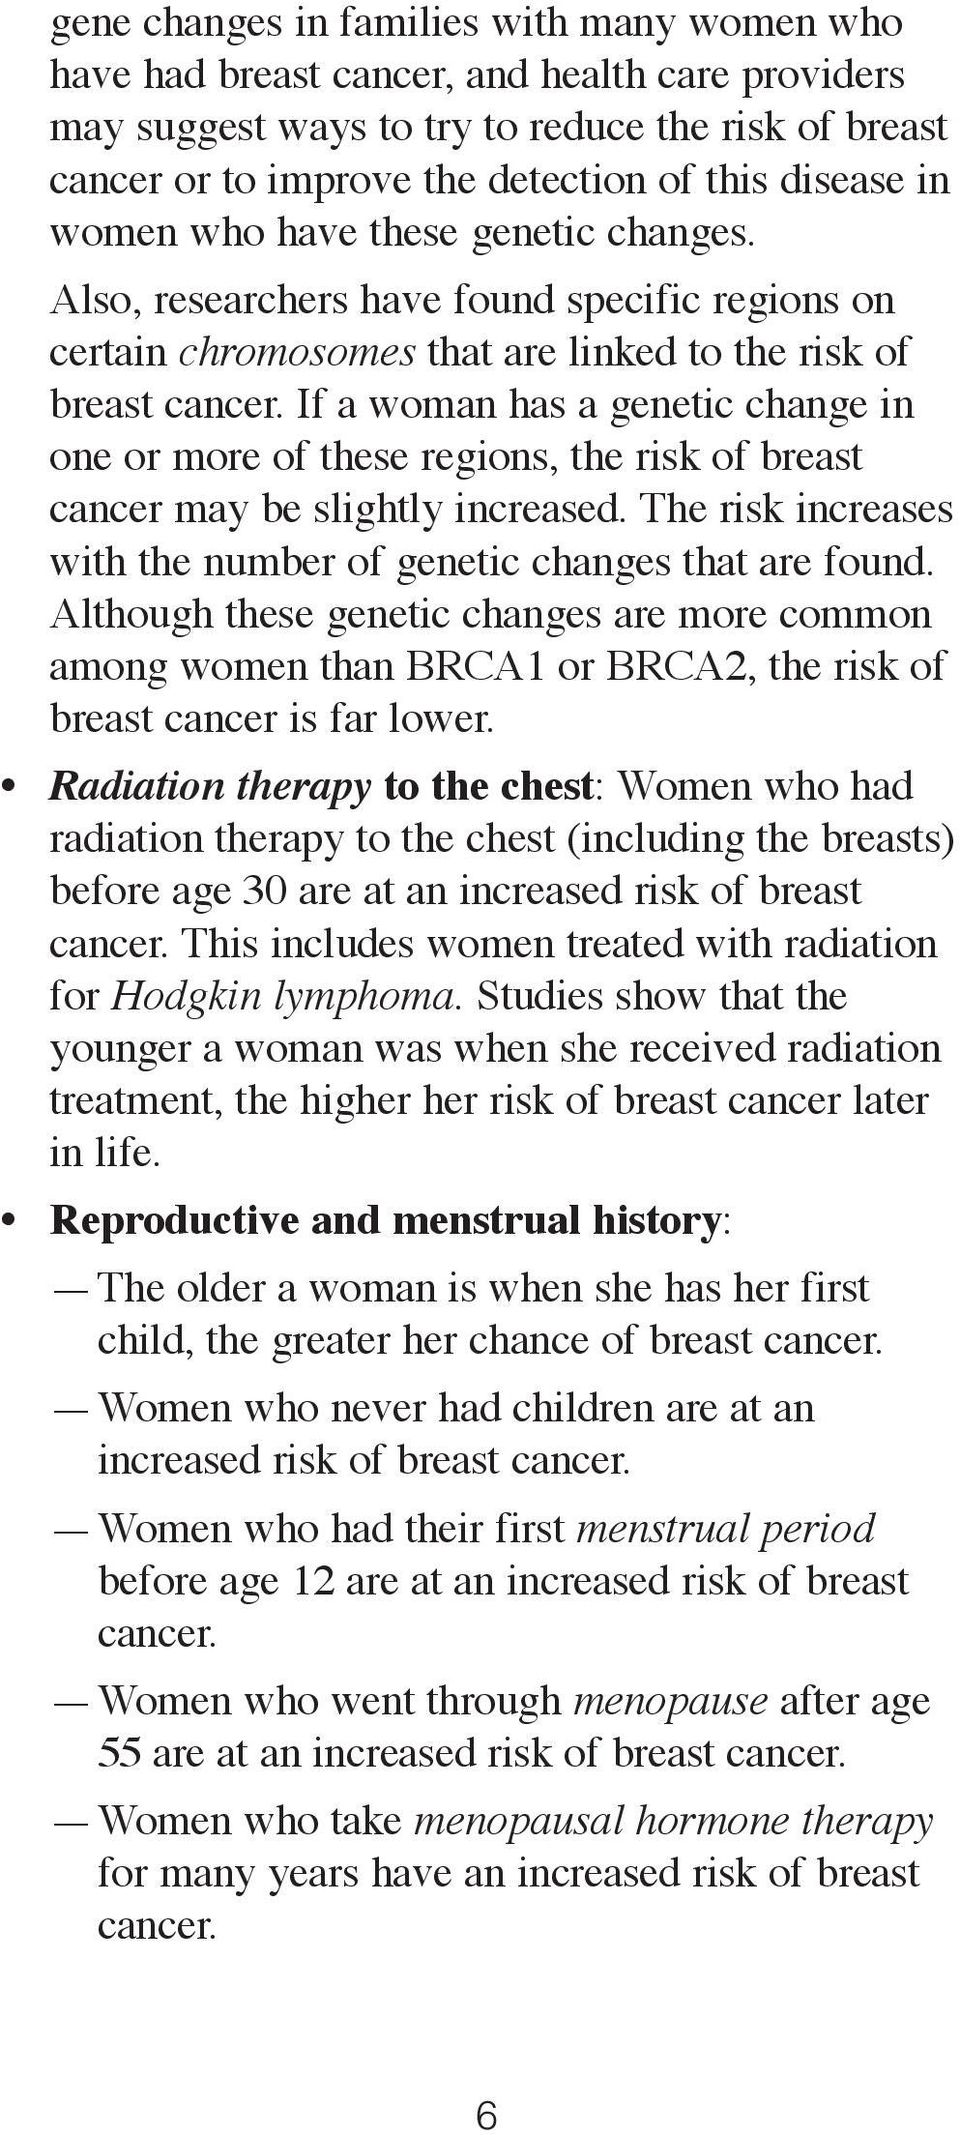 If a woman has a genetic change in one or more of these regions, the risk of breast cancer may be slightly increased. The risk increases with the number of genetic changes that are found.